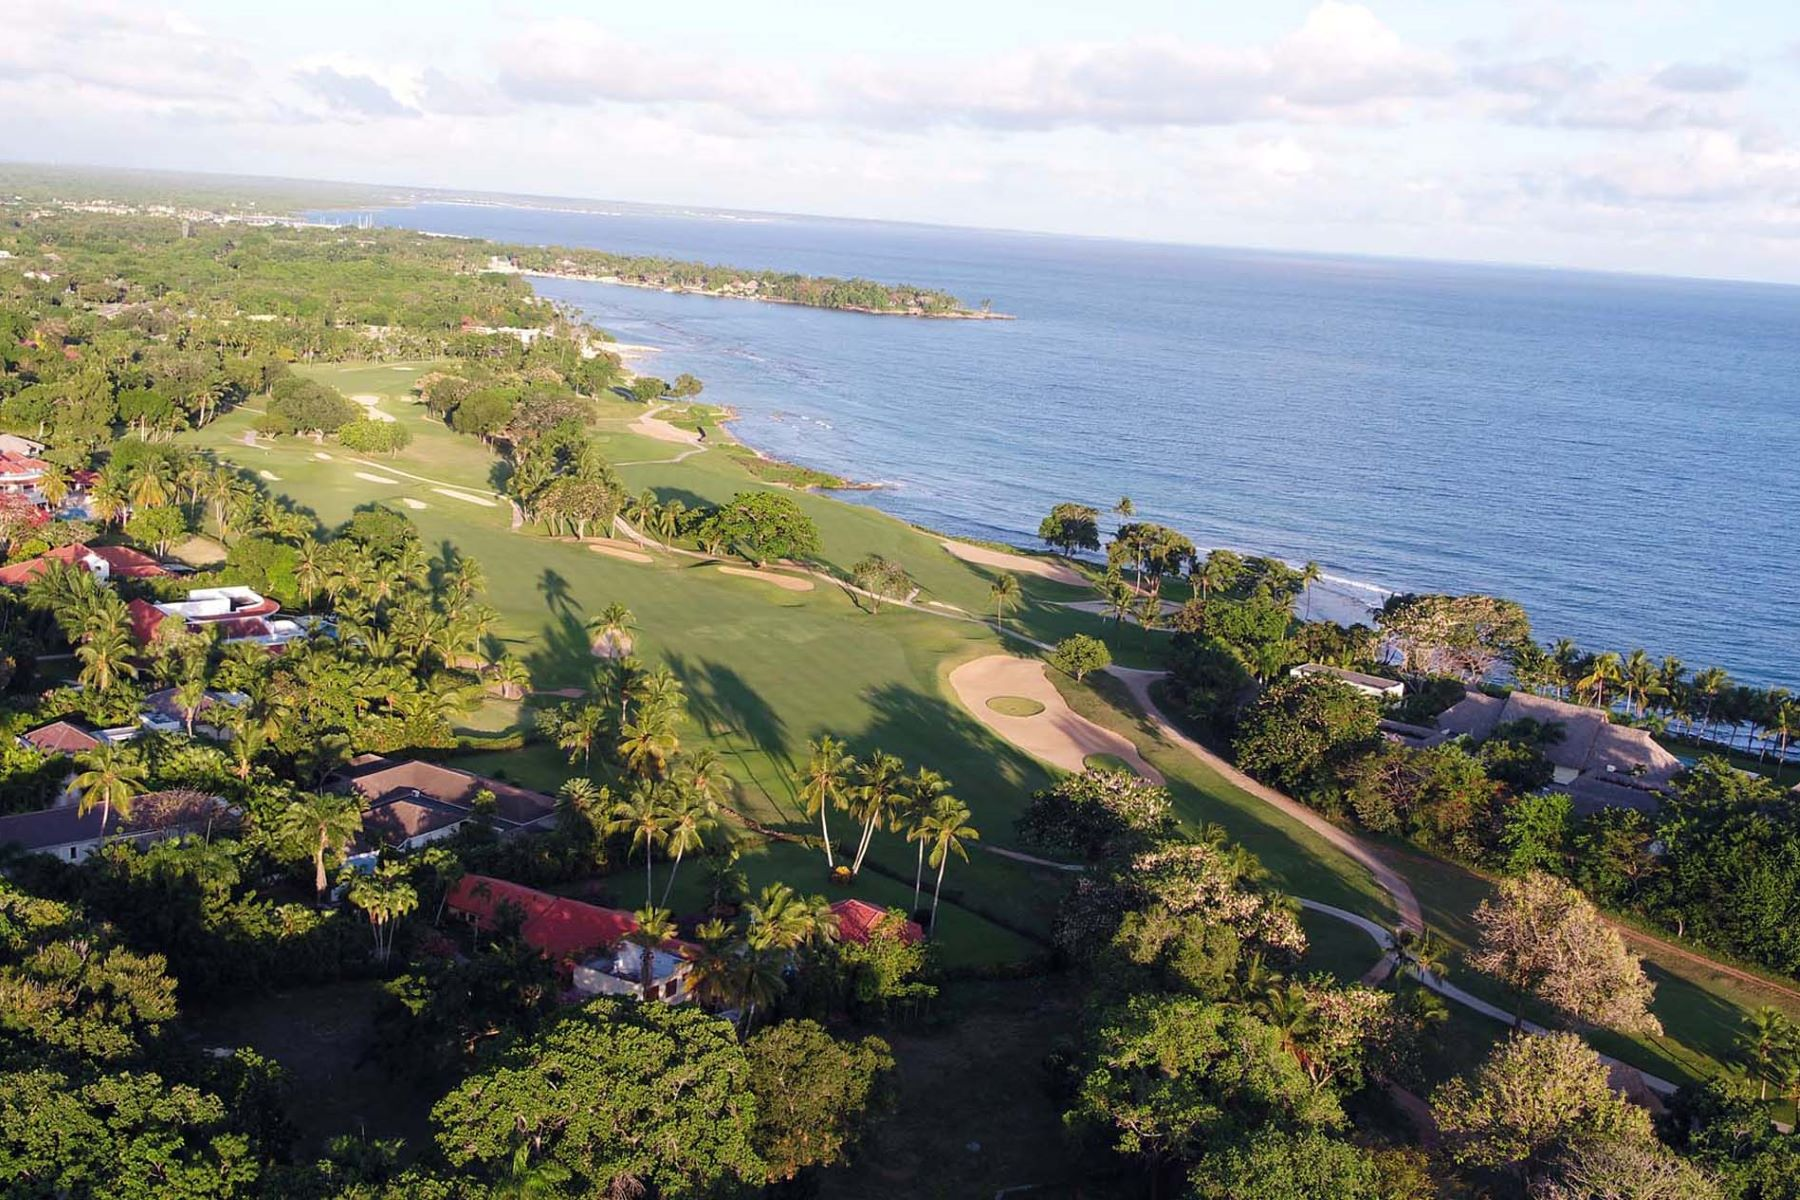 Land for Sale at Walk to the Beach Home Site with Ocean Views Casa De Campo, La Romana Dominican Republic